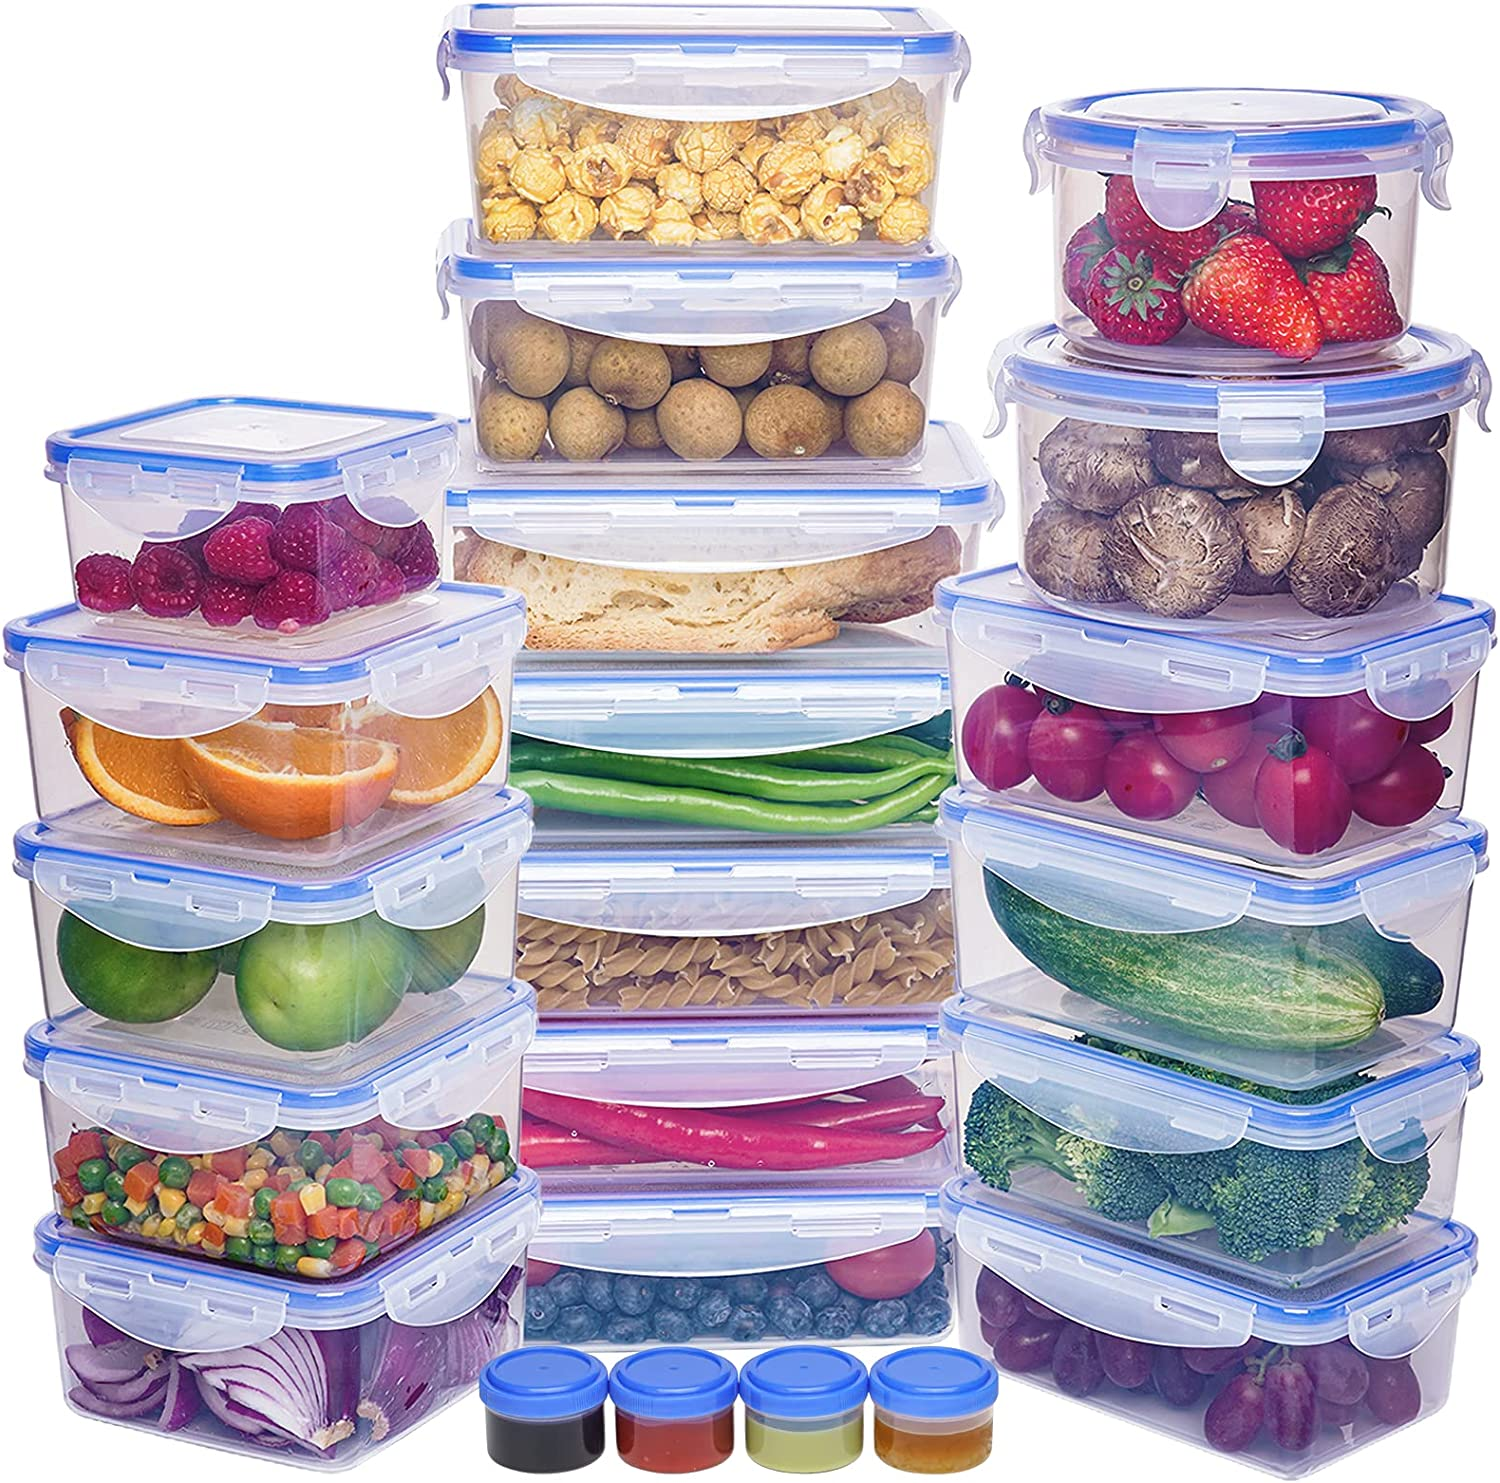 22 Pack Large Capacity Food Storage Containers Set - Airtight Plastic Food Containers with Easy Snap Lids - 100% Leak Proof Food Containers with Lids - Plastic Storage Containers with Lids - BPA-Free